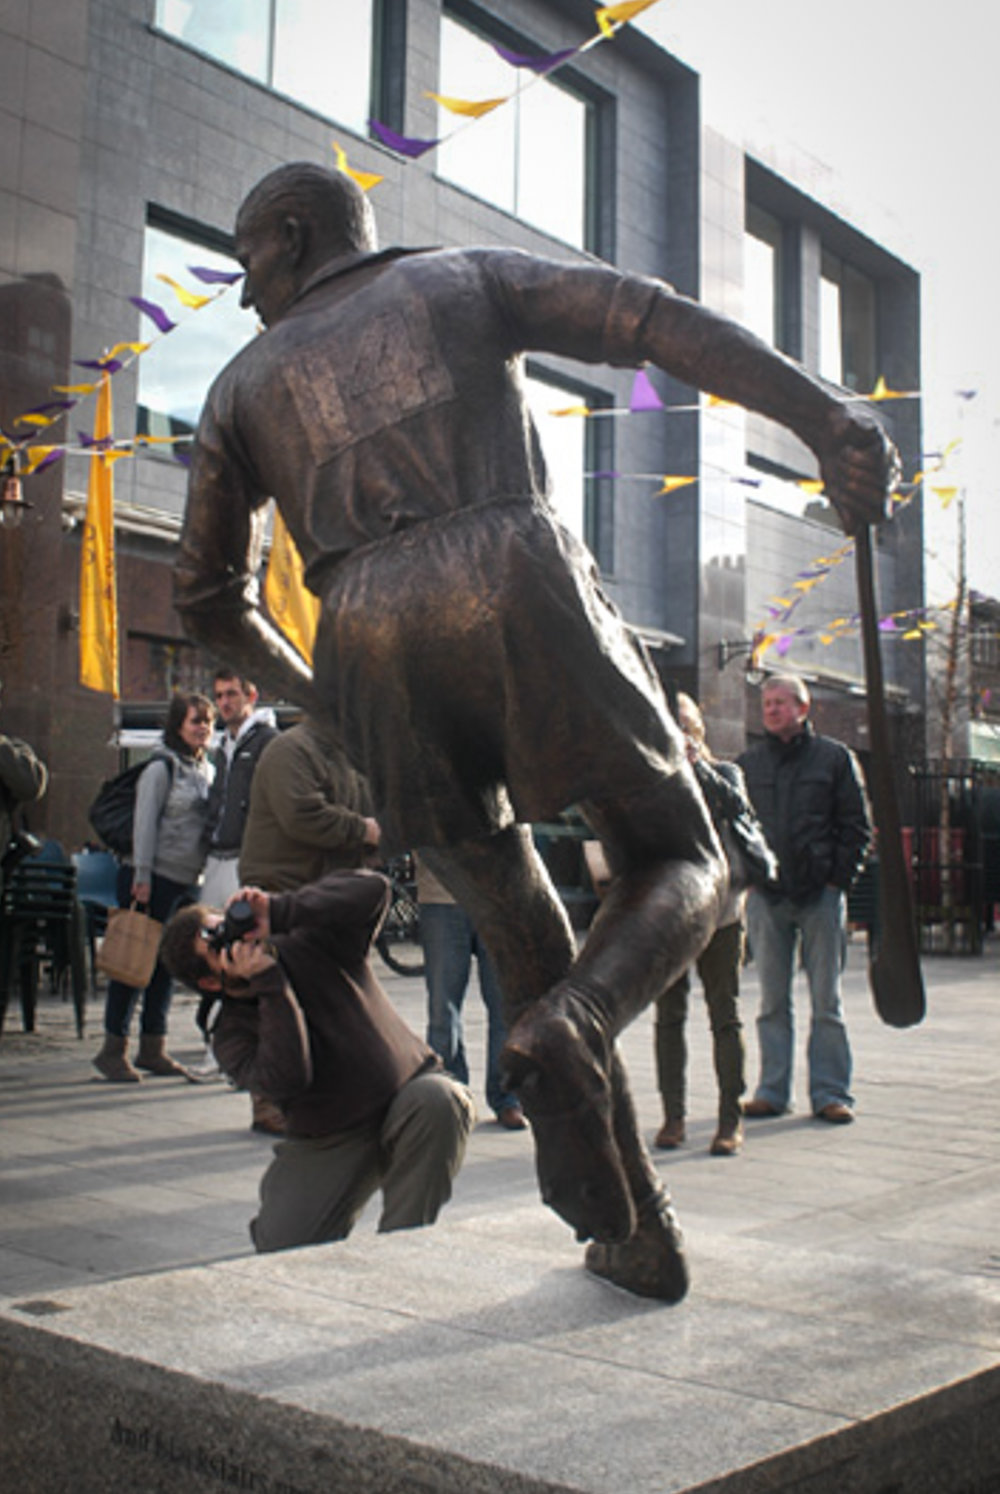 - 'Mark has managed to capture the energy and movement just prior to an explosive drive for goal and the release of what was termed a Rackard special. While the statue bears the image of our father, it is also more than just a representation of one man. As an image of him, himself, it represents the hurling great that he was; the leader, goal scorer, the sportsman. It captures the true grit and determination as he eyes up a typical goal scoring opportunity. He had ferocious determination, power, strength and a will to win'.Bobby Rackard